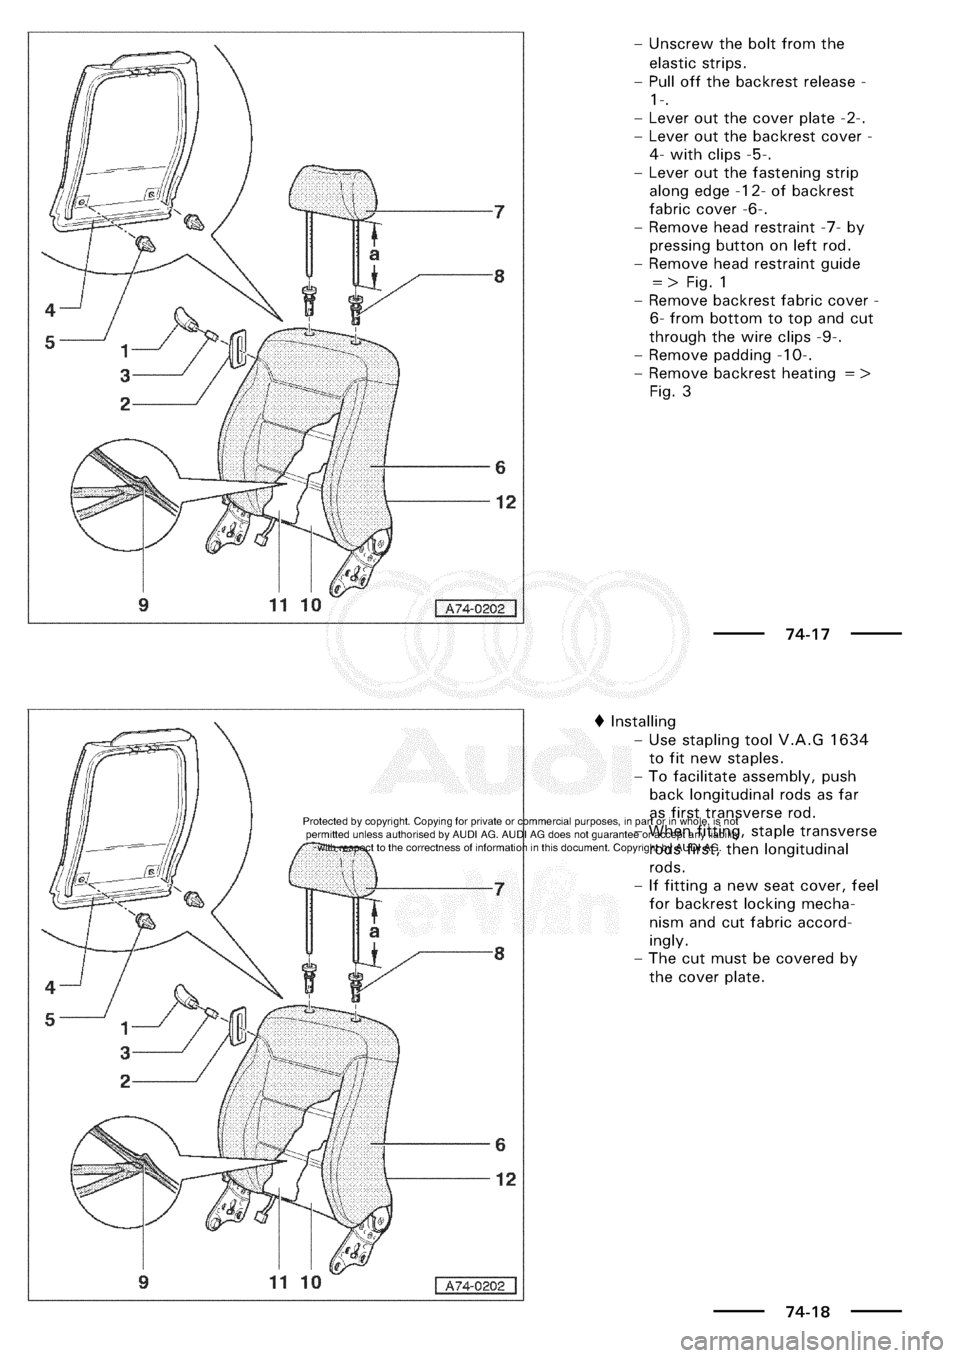 AUDI A3 2001 8L / 1.G General Body Assembly Interior Workshop Manual